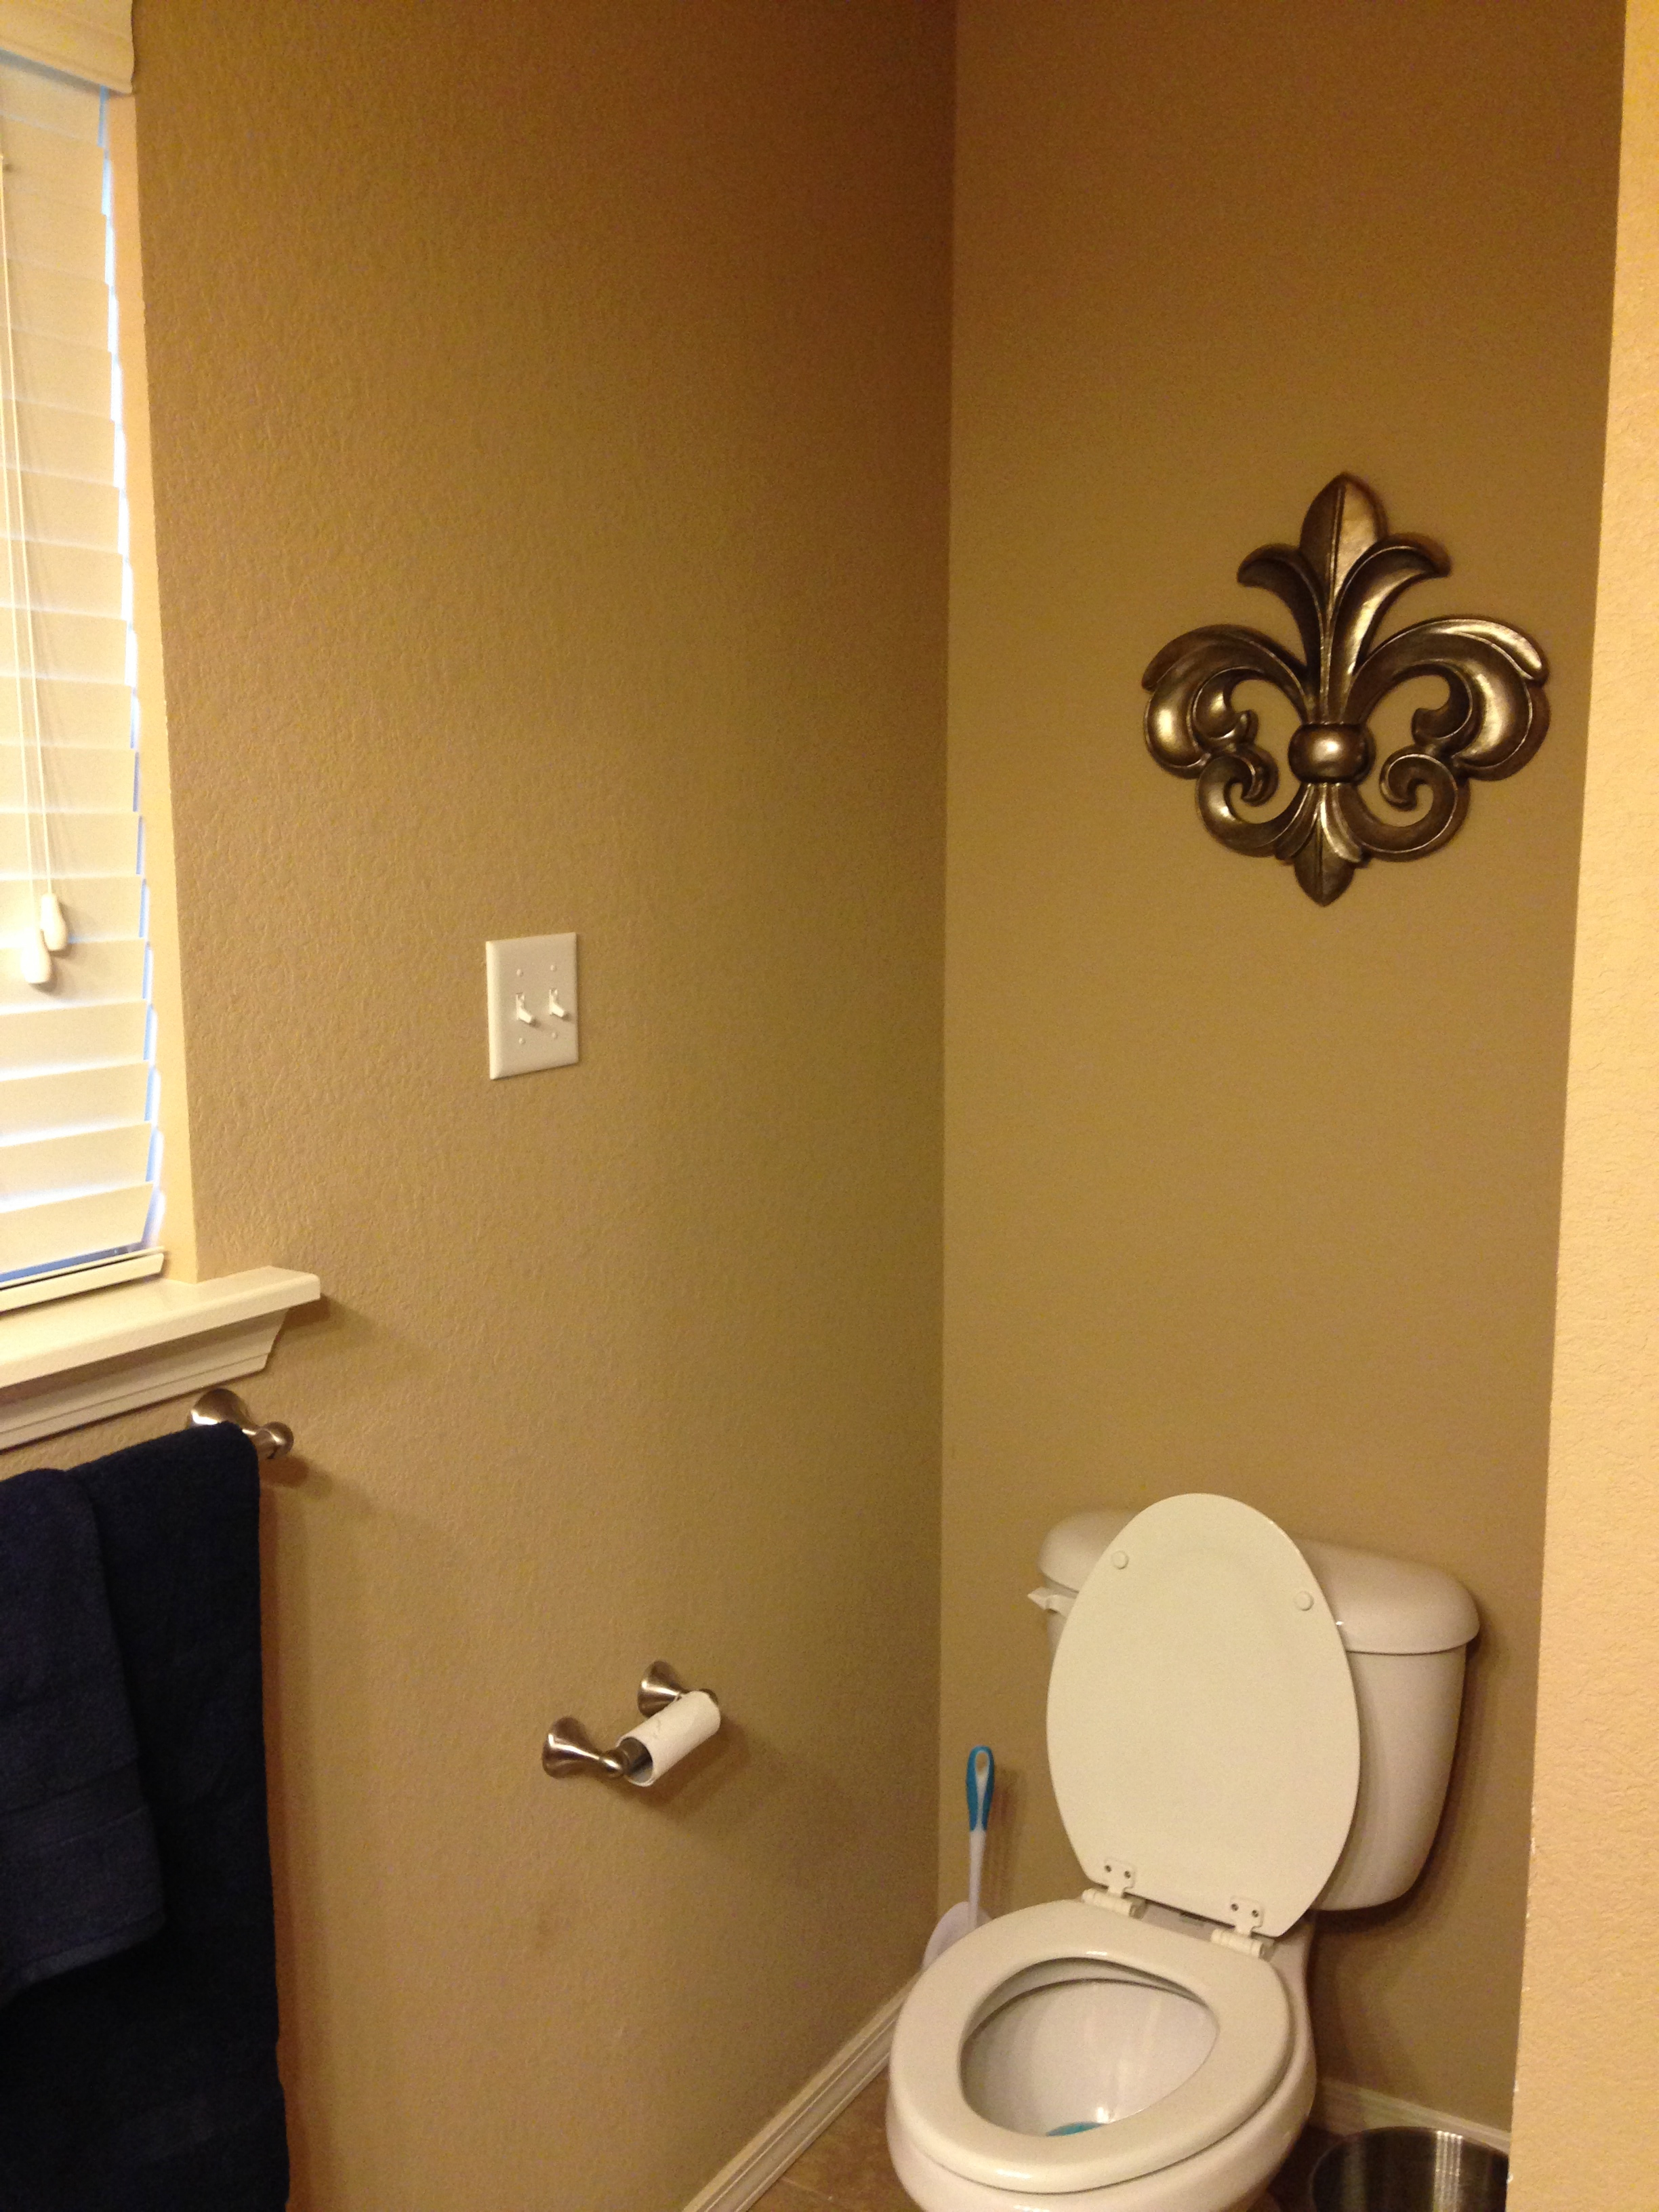 Sorry for the toilet shot but I LOVE my fleur de lis over my toilet  I got  it at Hobby Lobby half price of course. Master Bathroom Tour   Ricci Alexis